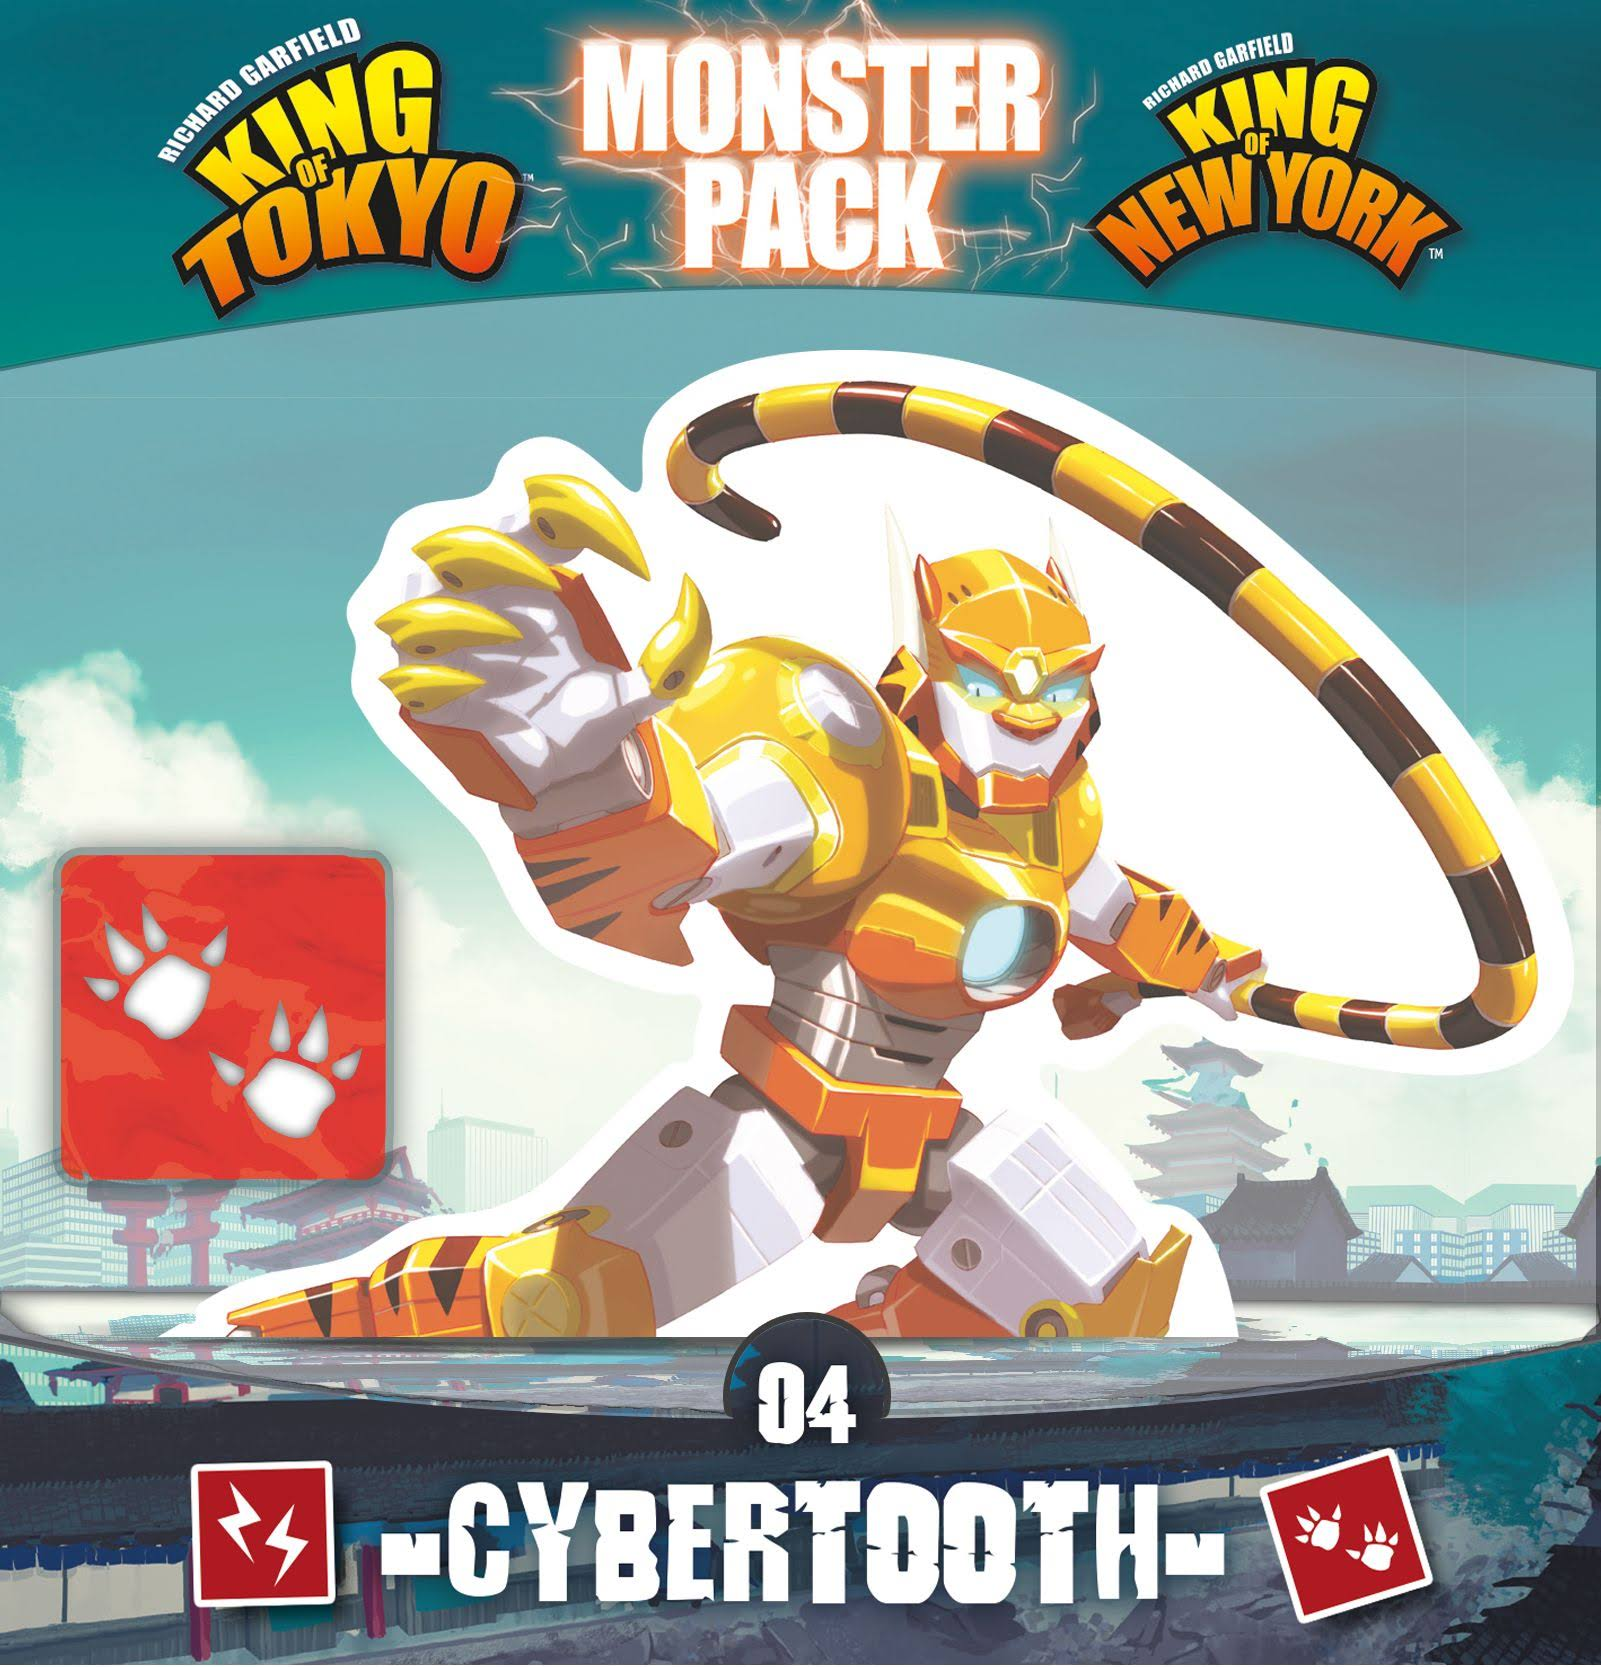 King of Tokyo and New York Cybertooth Monster Pack